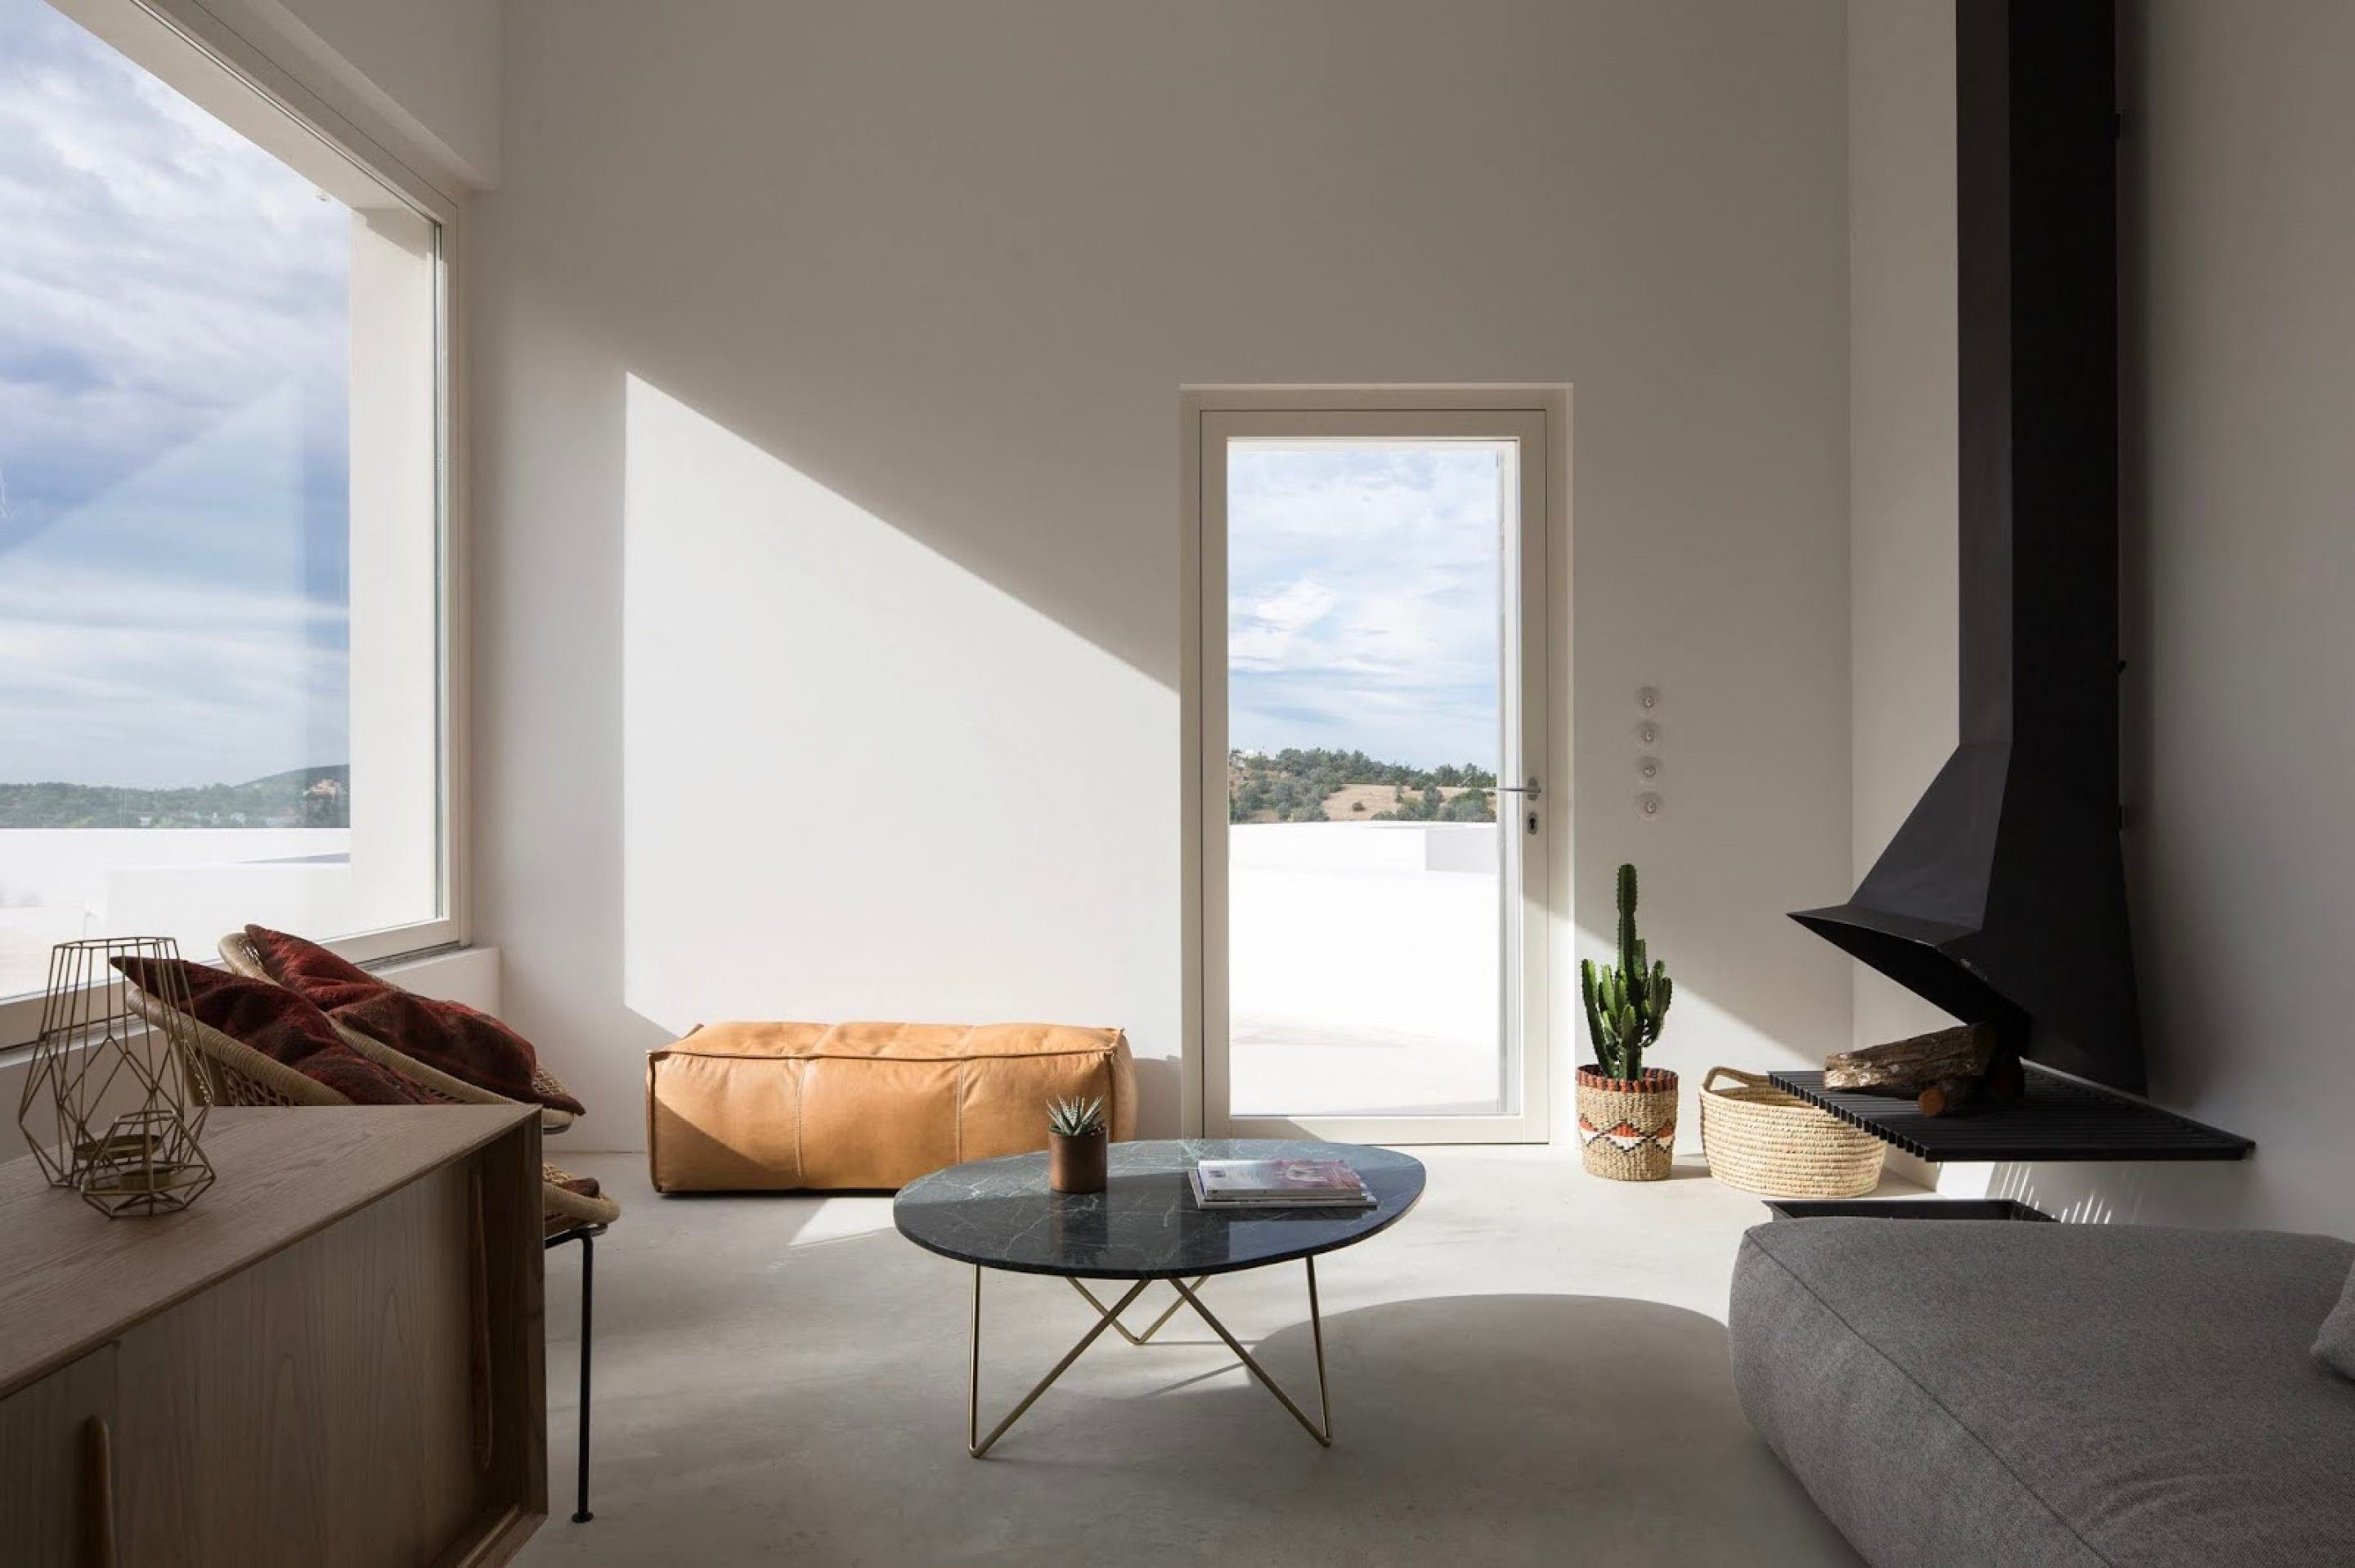 IGNANT-Travel-Casa-Luum-Portugal-22